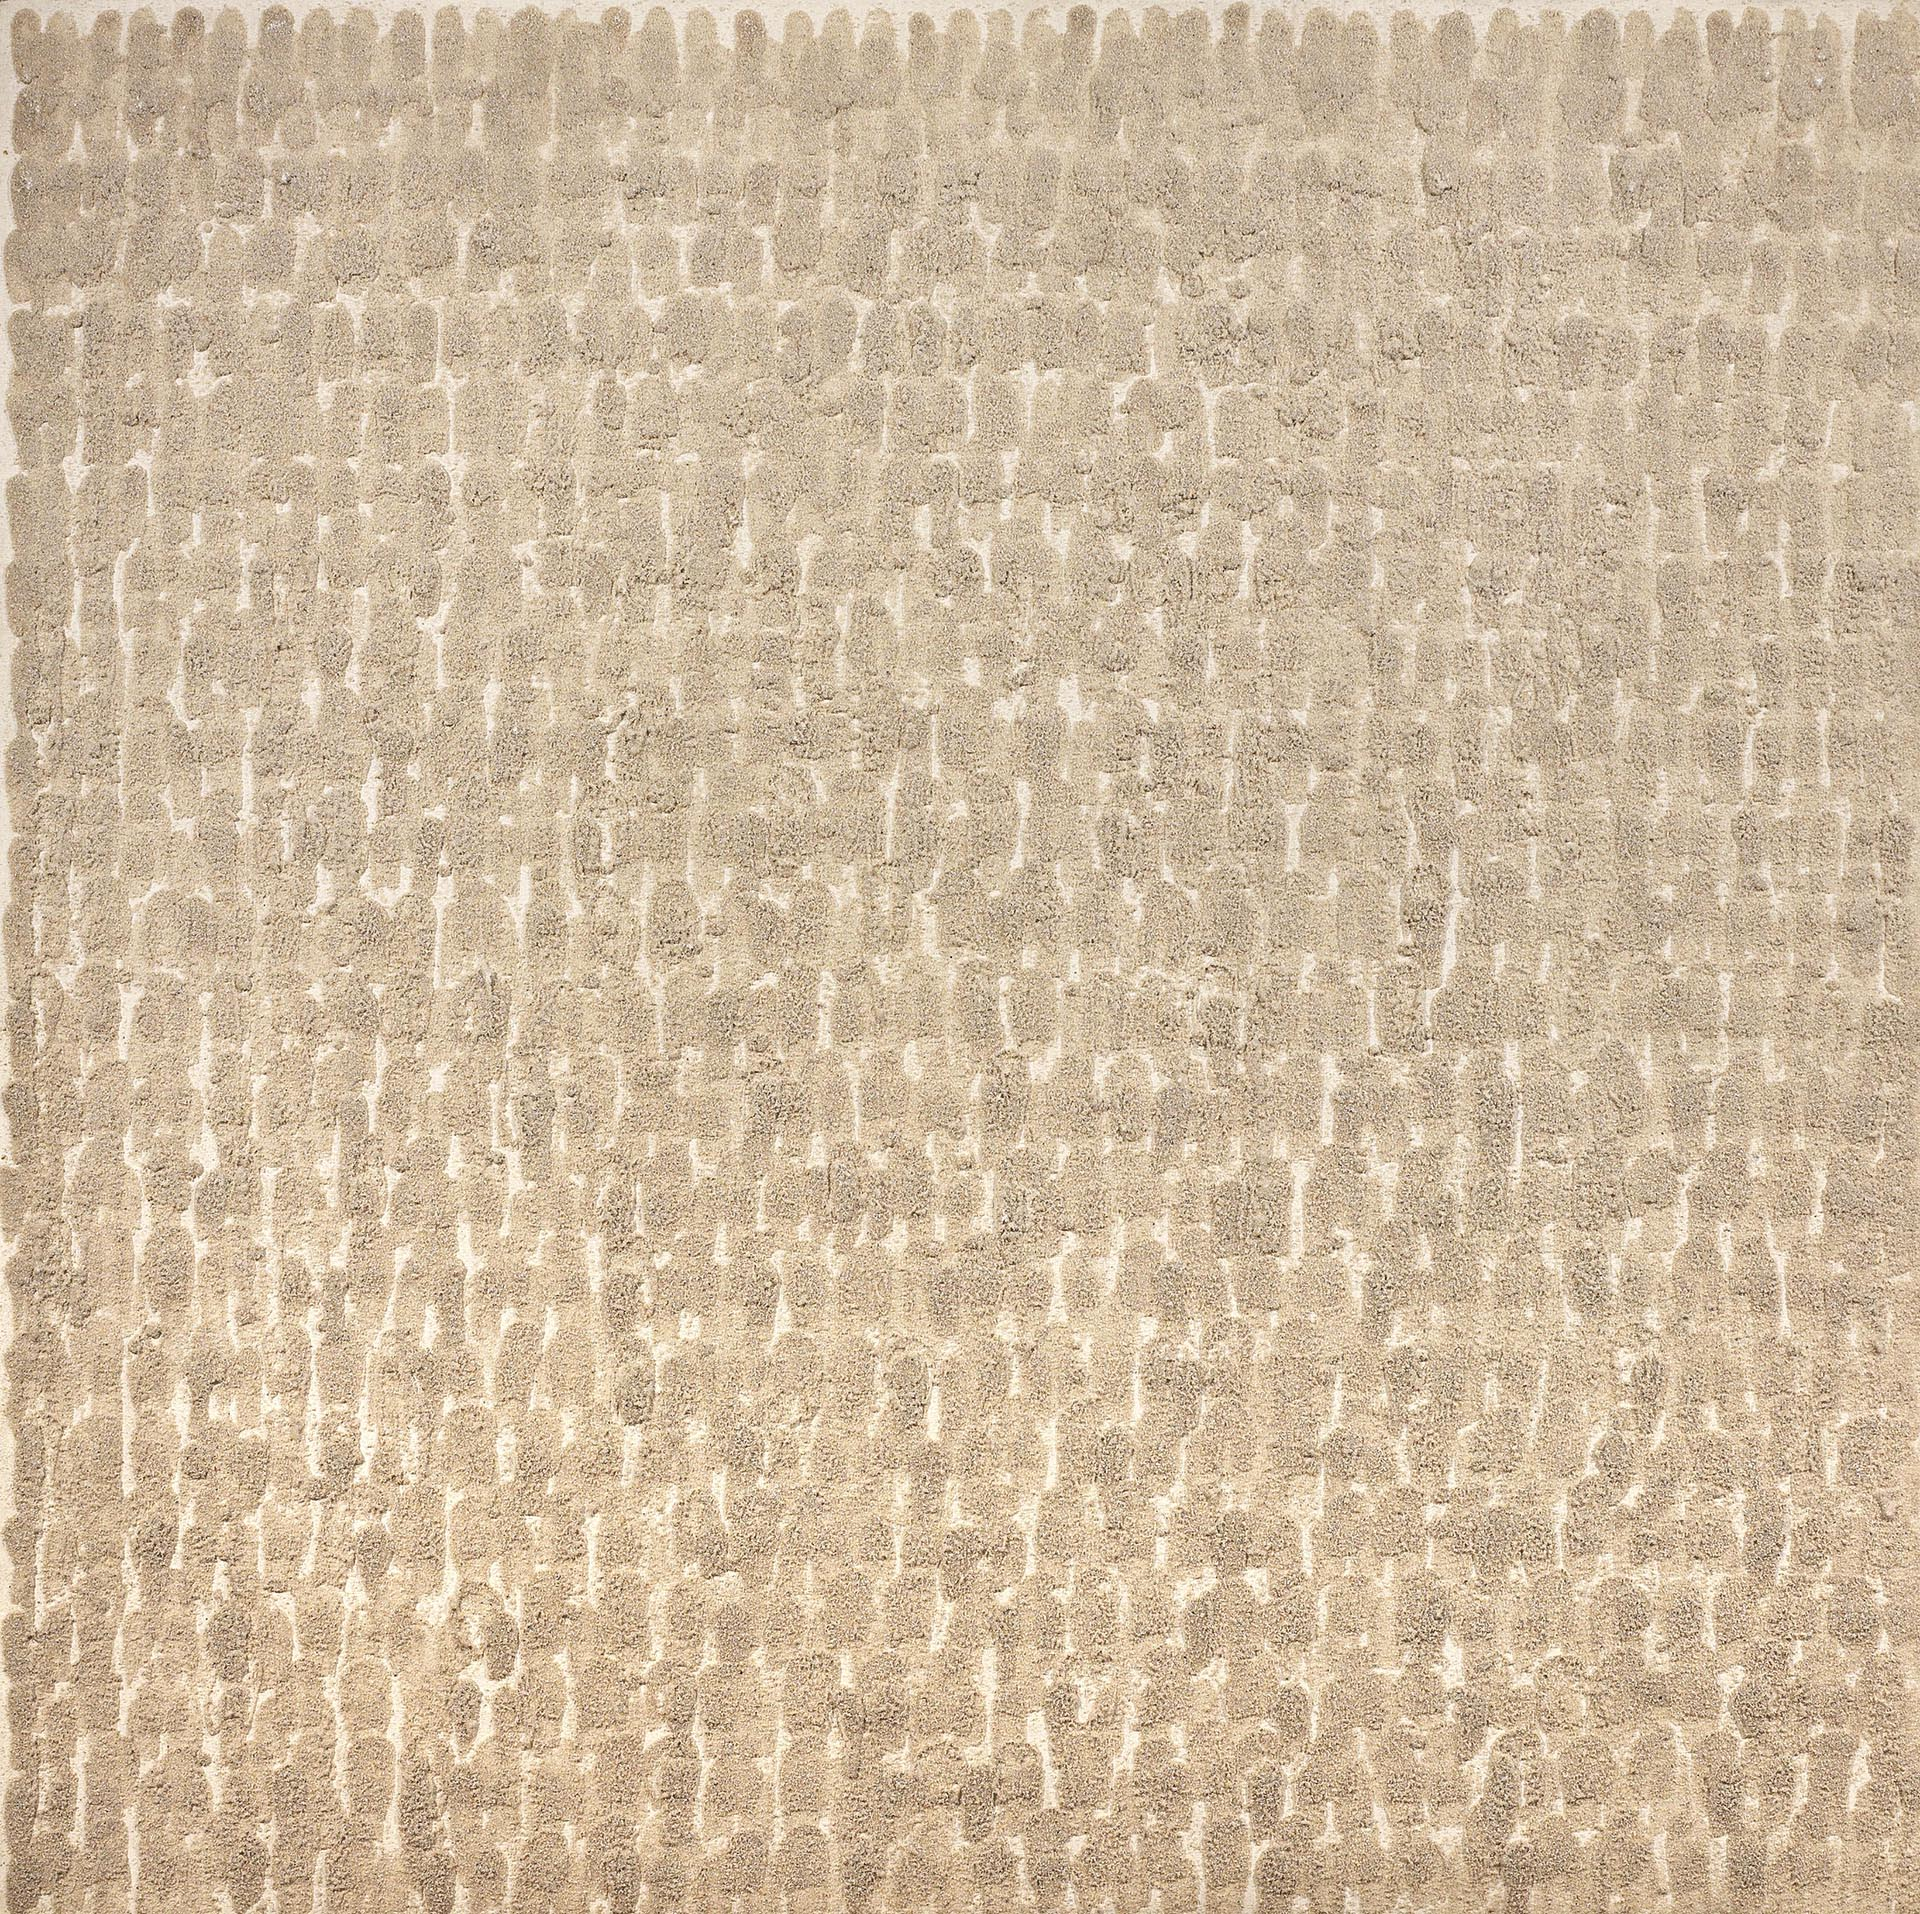 Uecker, Untitled, 1976, 150x150 cm